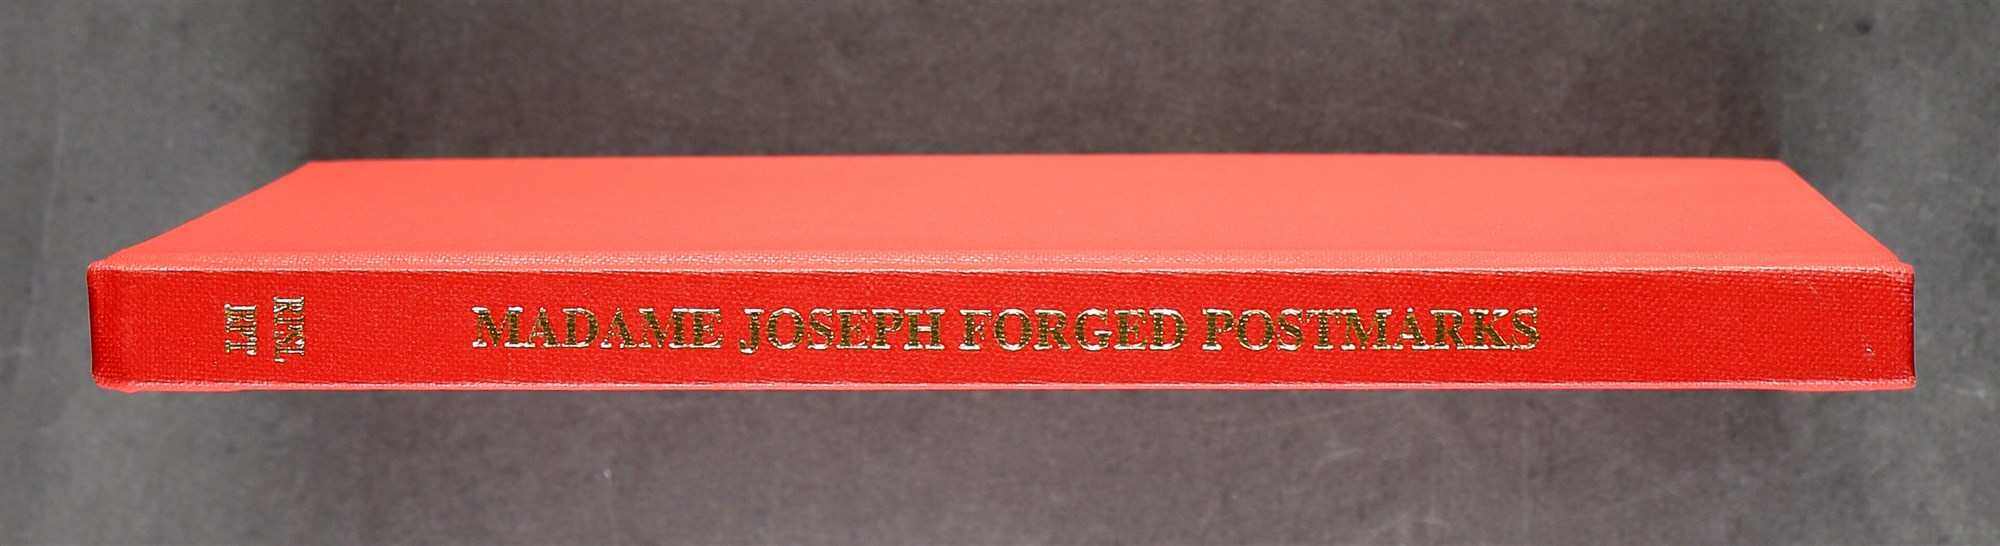 MADAME JOSEPH FORGED POSTMARKS book by D. Worboys & R. B. West, 1994, numbered 255 of an edition of - Image 2 of 5